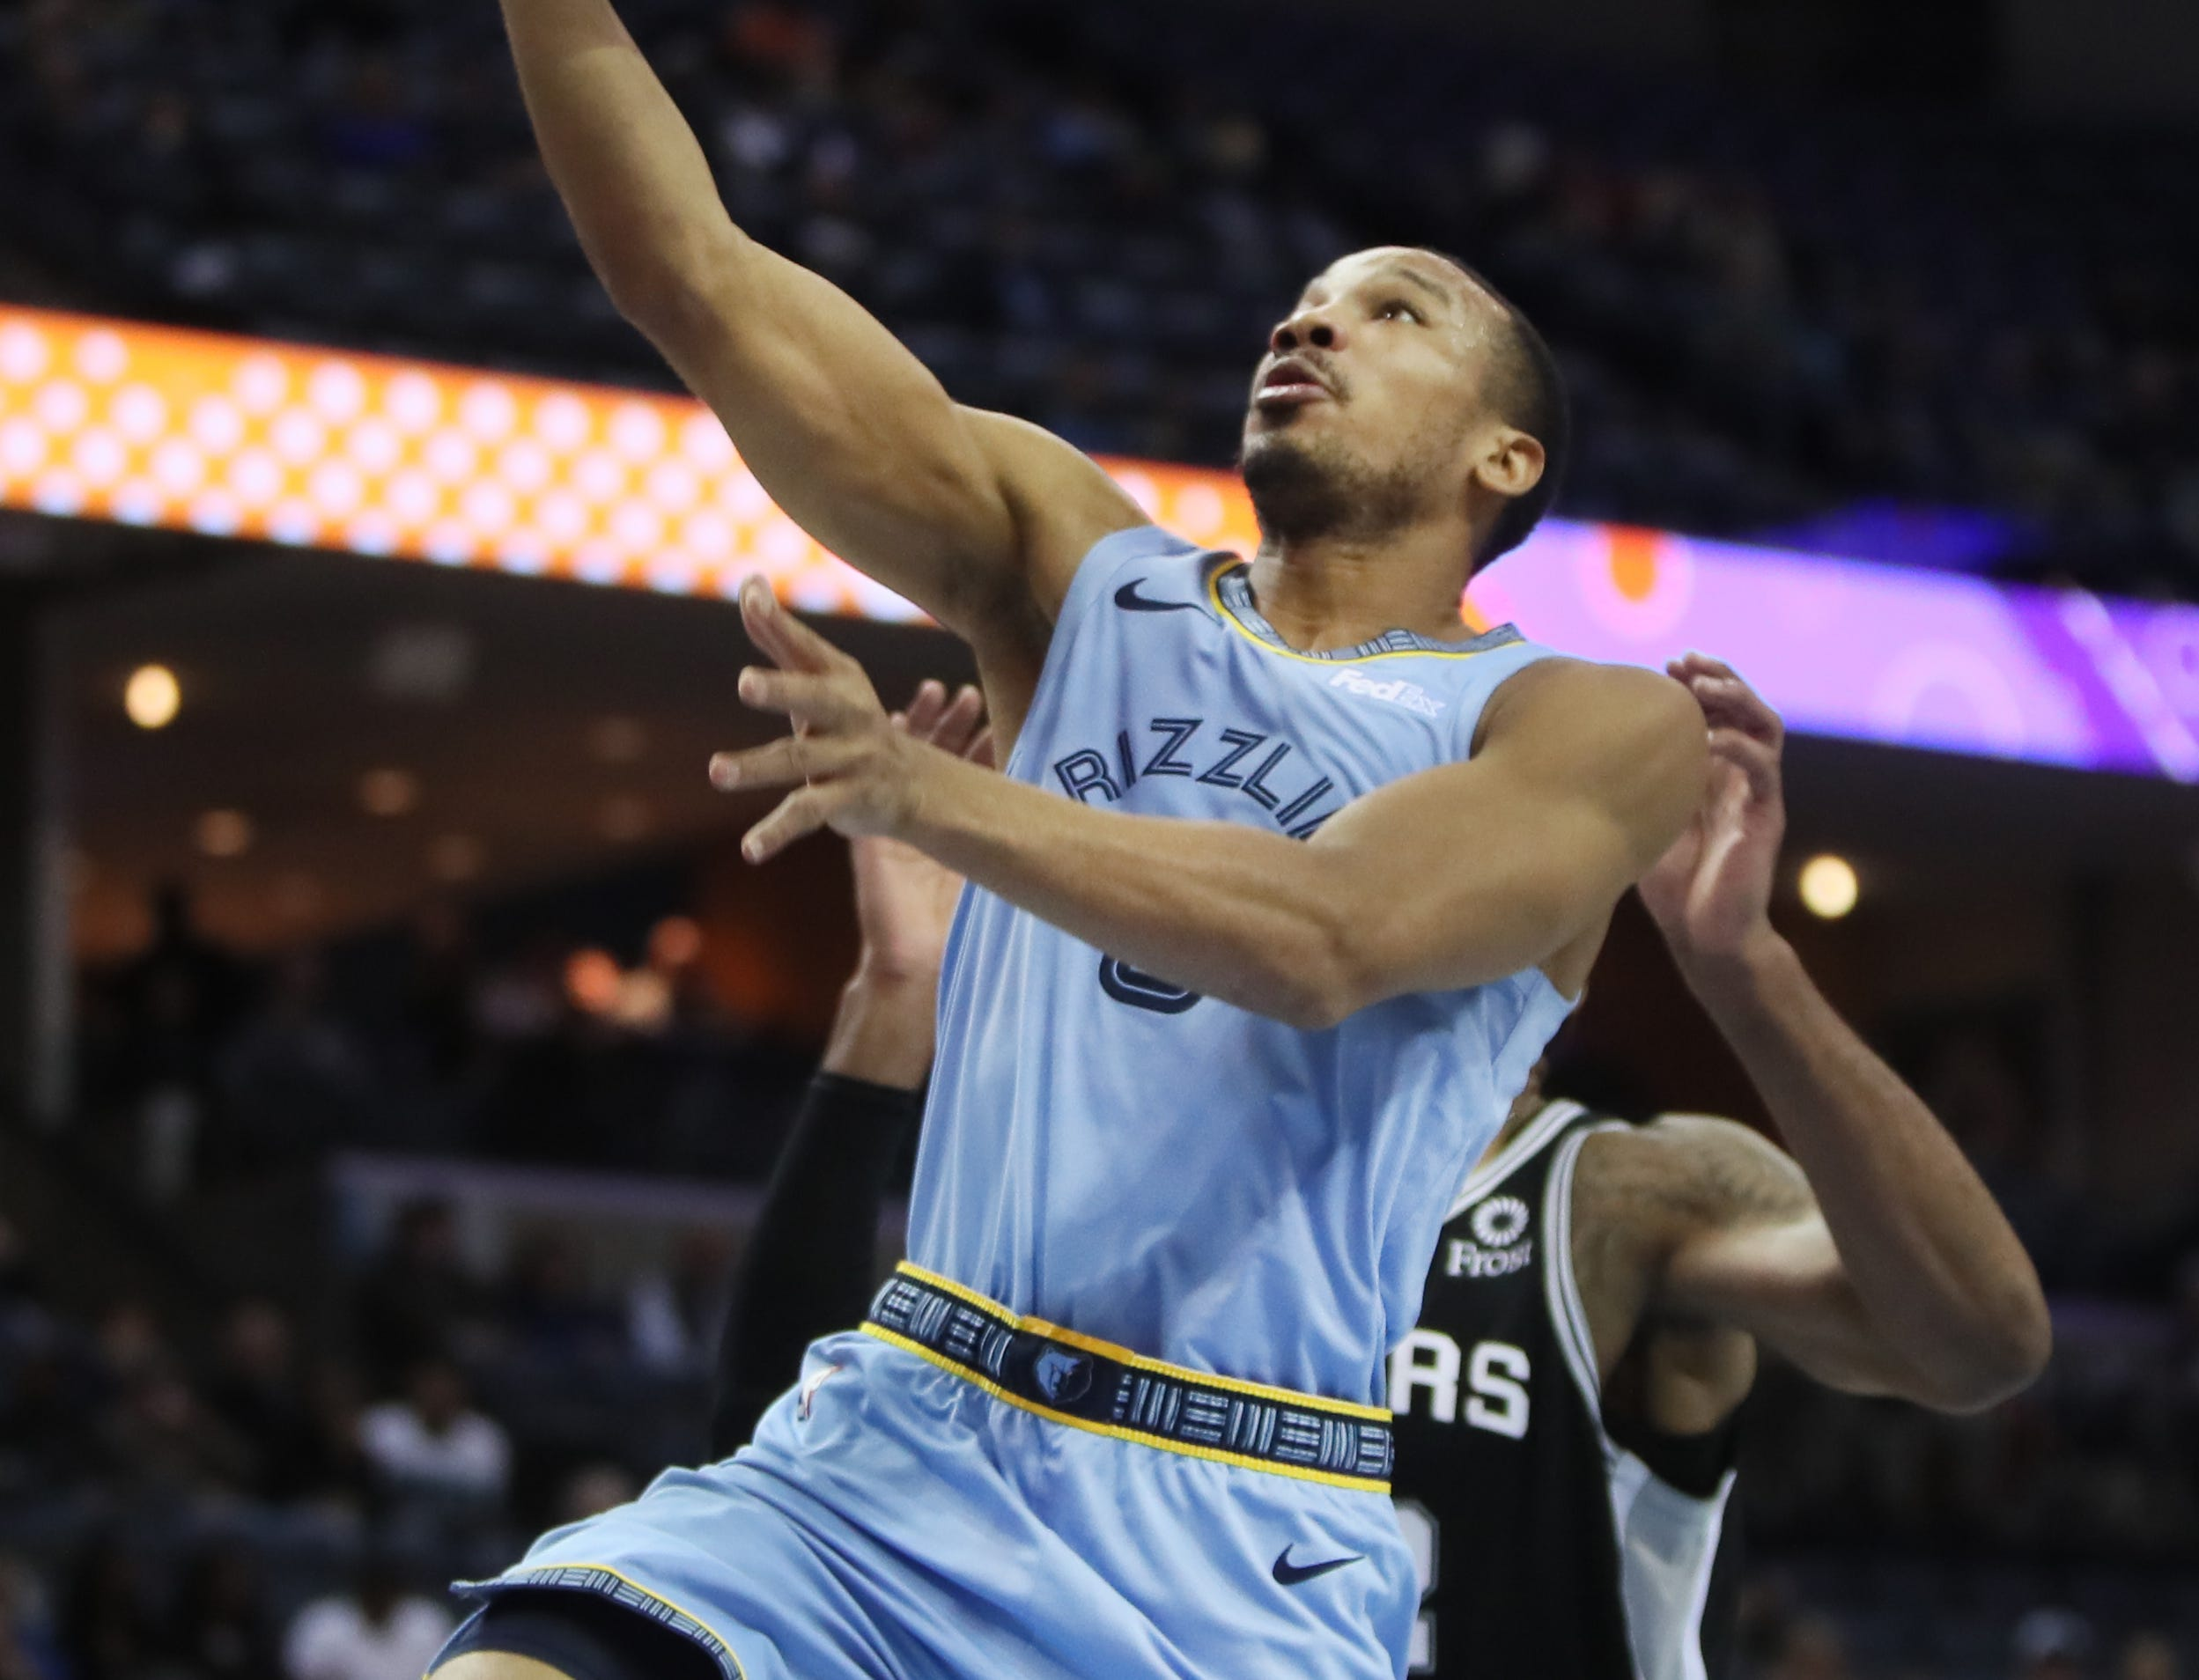 Memphis Grizzlies guard Avery Bradley lays the ball up against the San Antonio Spurs during their game at the FedExForum on Tuesday, Feb. 12, 2019.